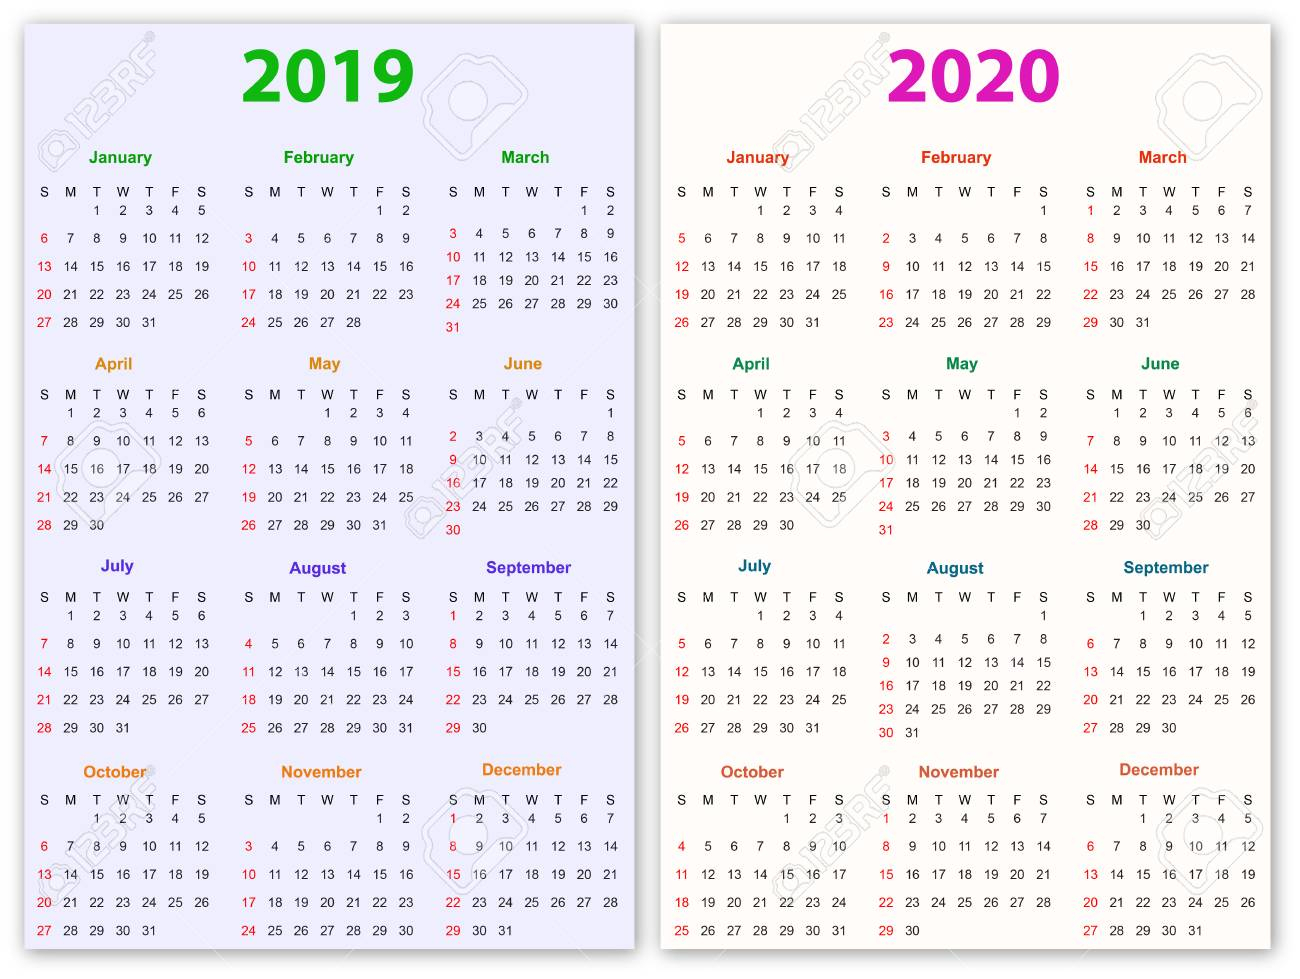 12 Months Calendar Design 2019-2020 Printable And Editable.